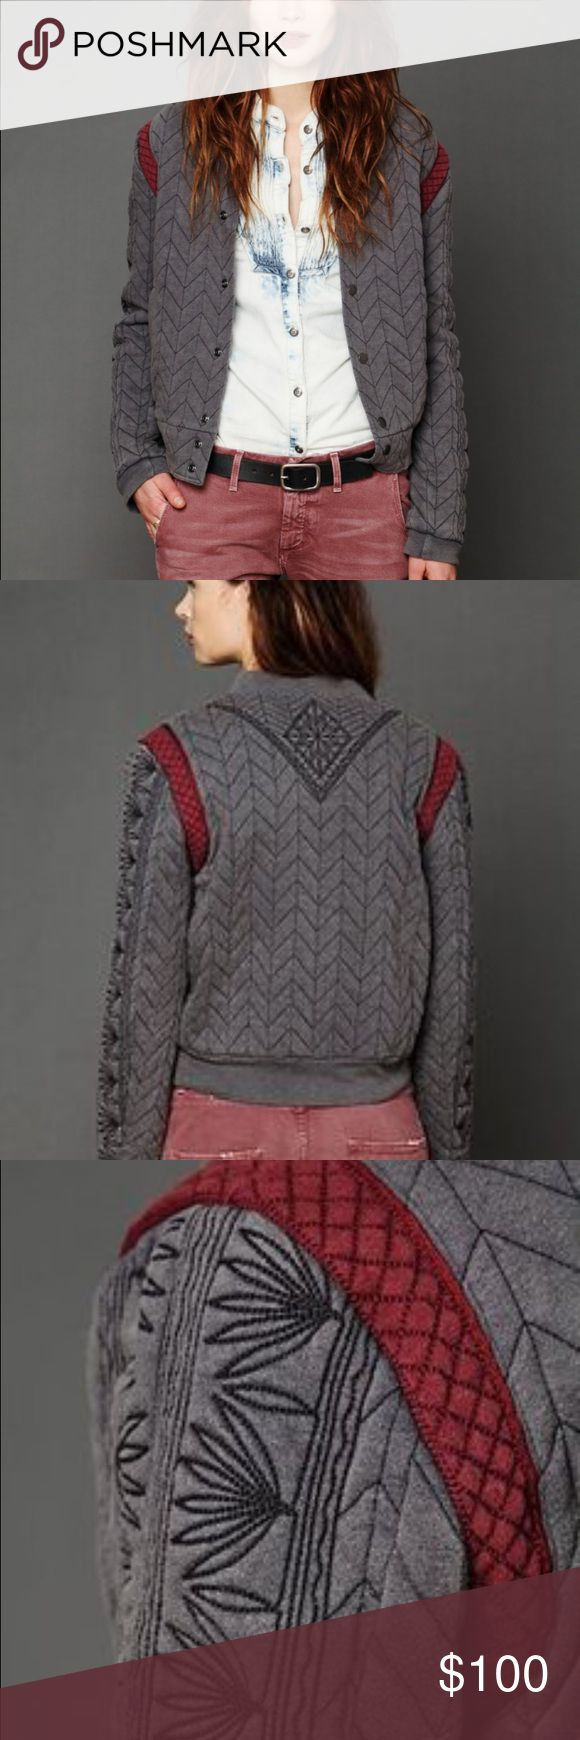 Free People New Romantics Quilted Baseball Jacket Beautiful Free People jacket! Super soft and cozy!! Wish this was my size, it's still being sold online. Free People Jackets & Coats